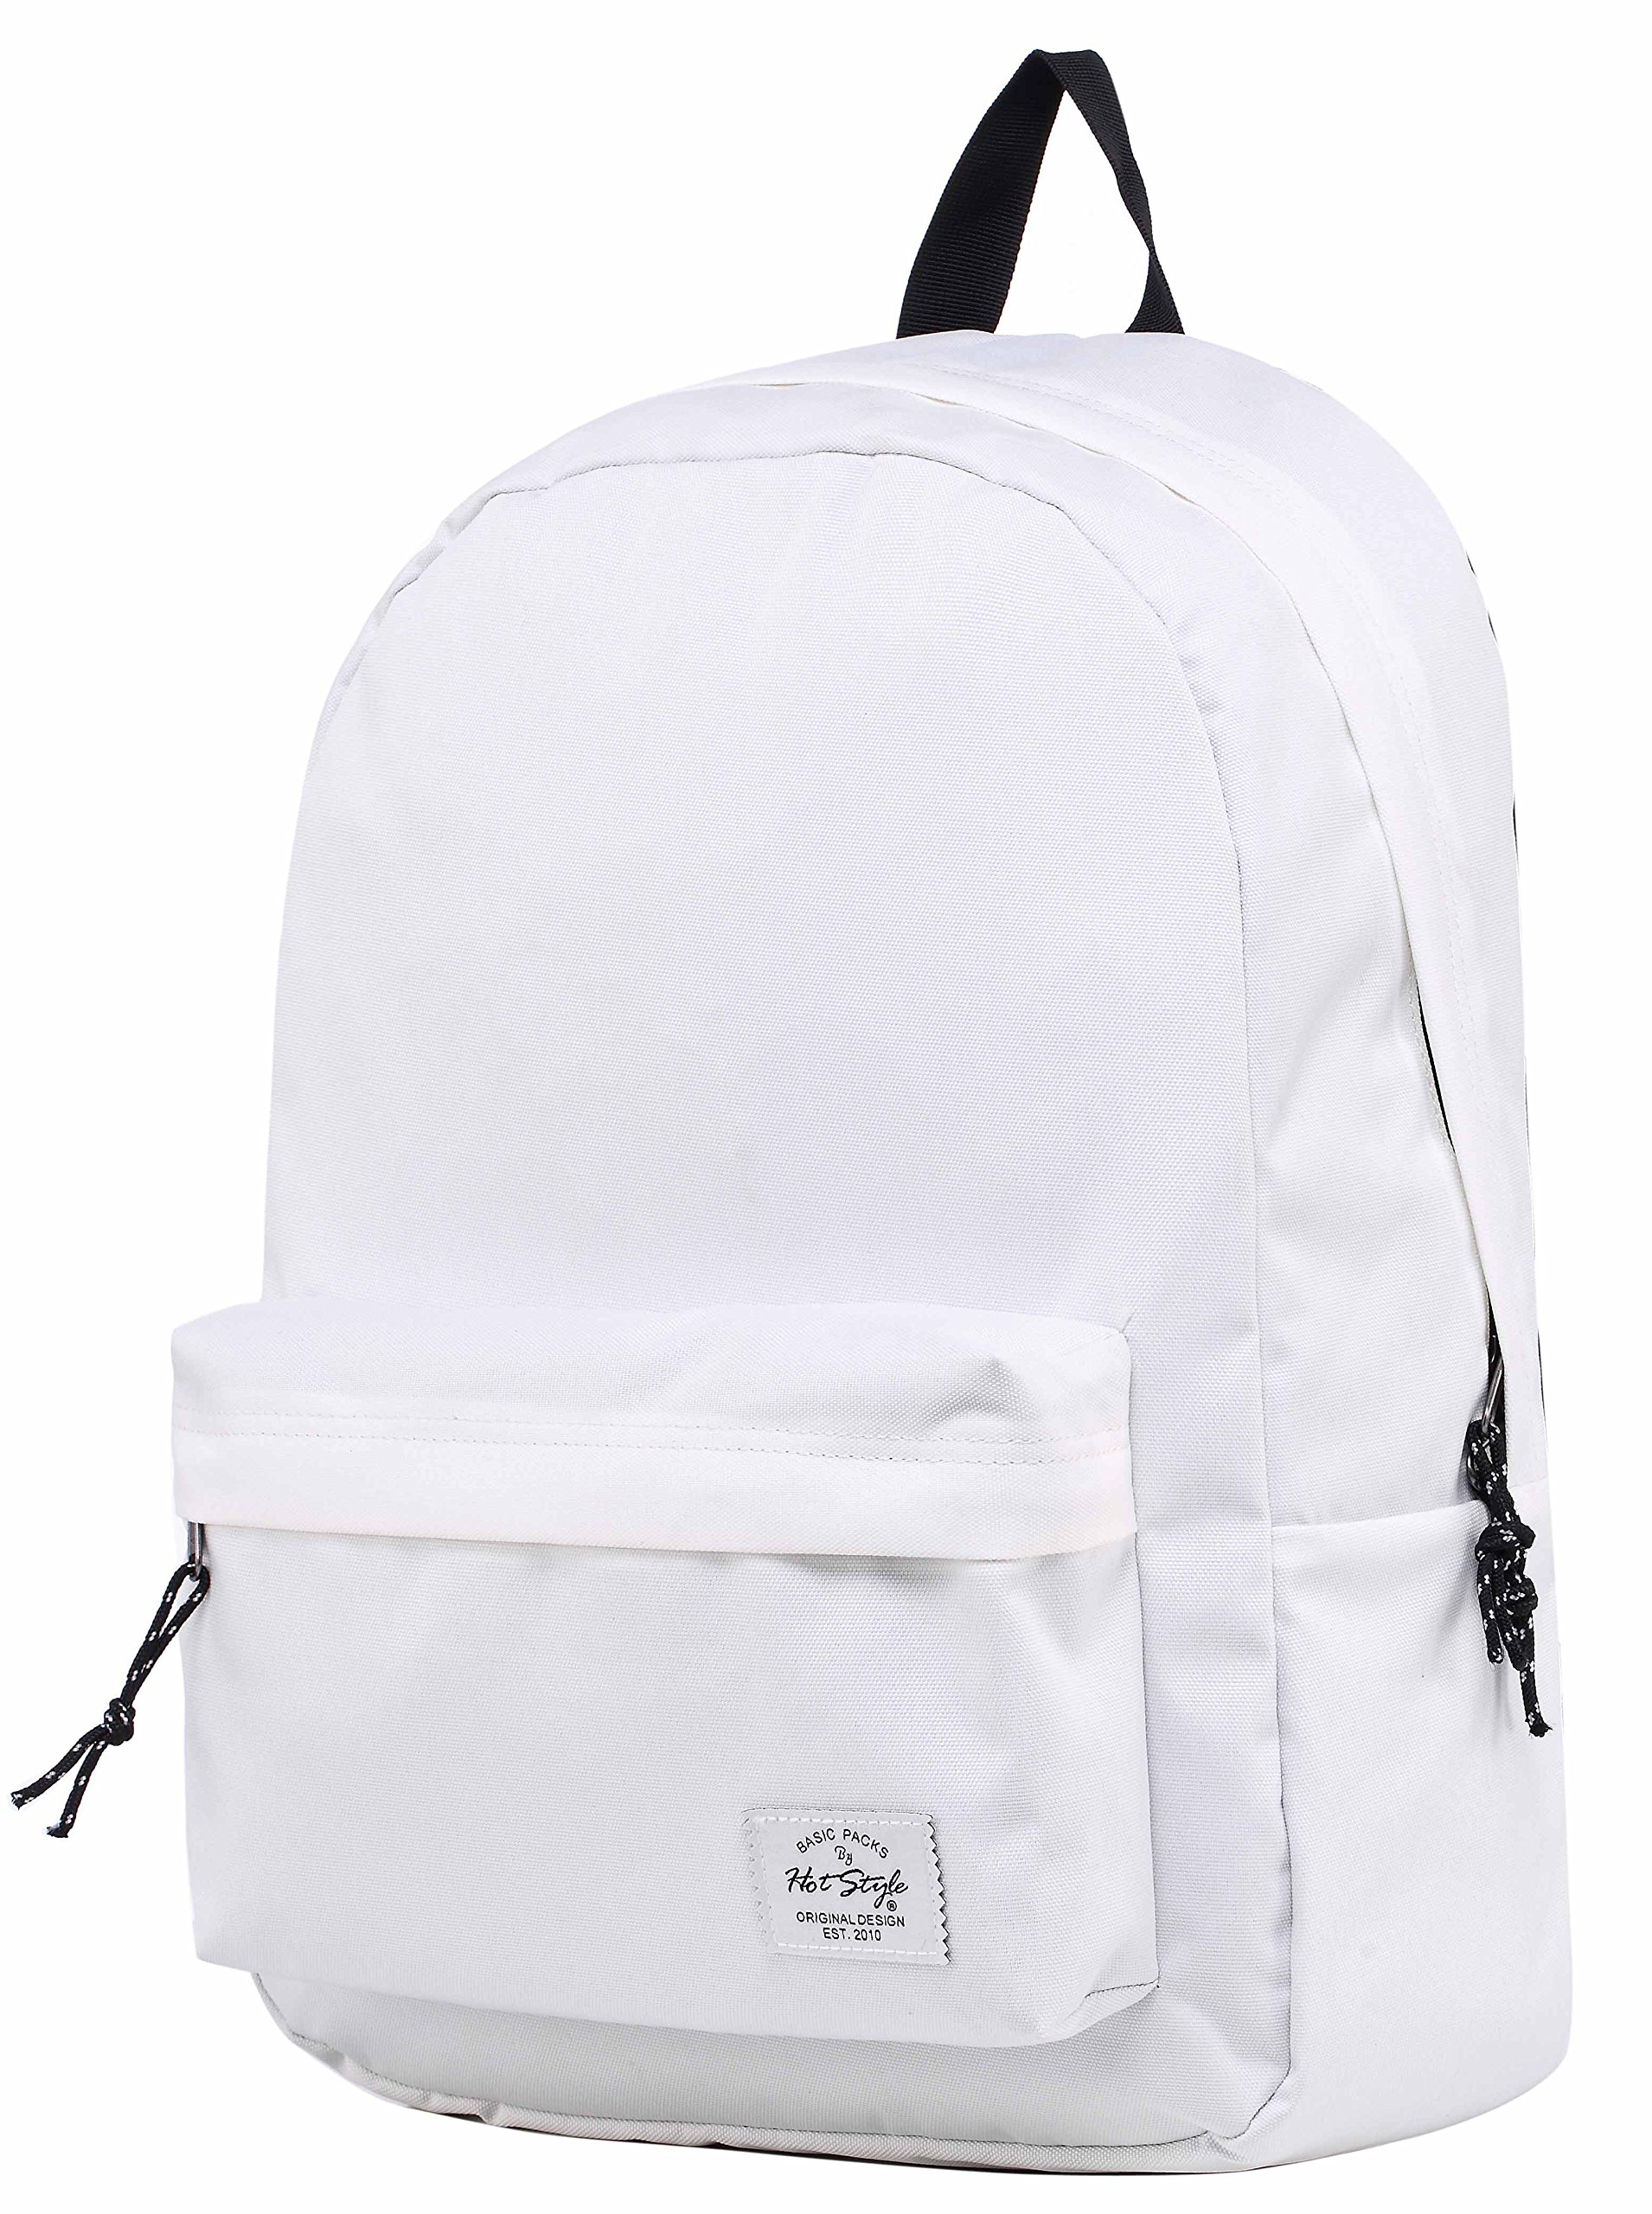 SIMPLAY Classic School Backpack Bookbag, White by HotStyle